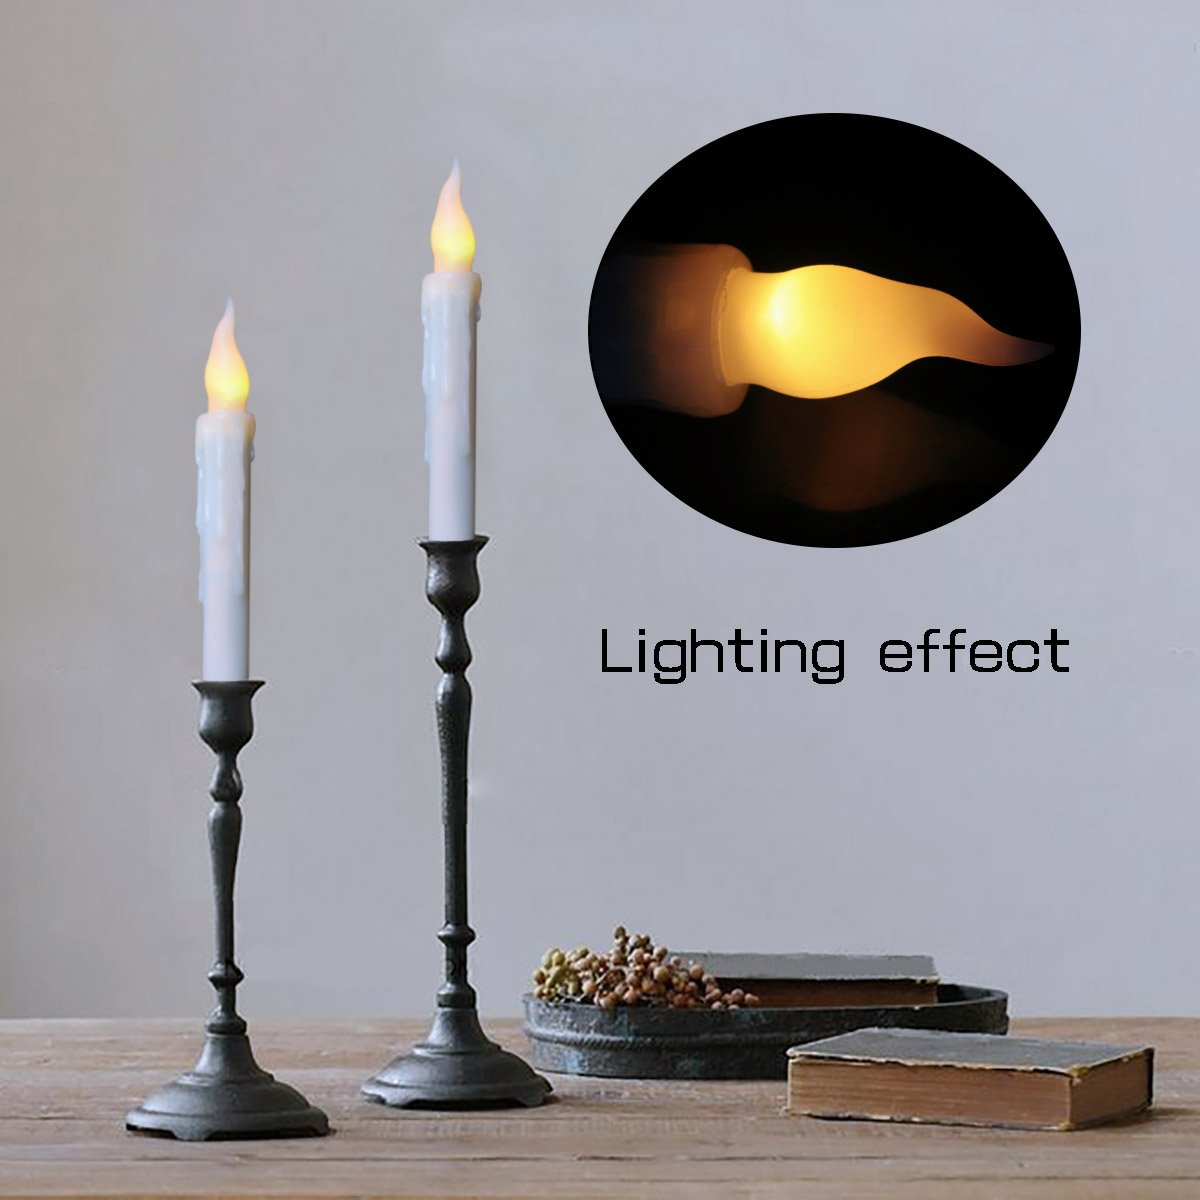 Flameless Battery Operated LED Taper Candles Timing Function Flickering Window Candles Warm White Bulb, LED Timer Candle for Wedding, Christmas, Halloween, Thanksgiving, Home Decor, Pack of 6 by Freewander (Image #3)